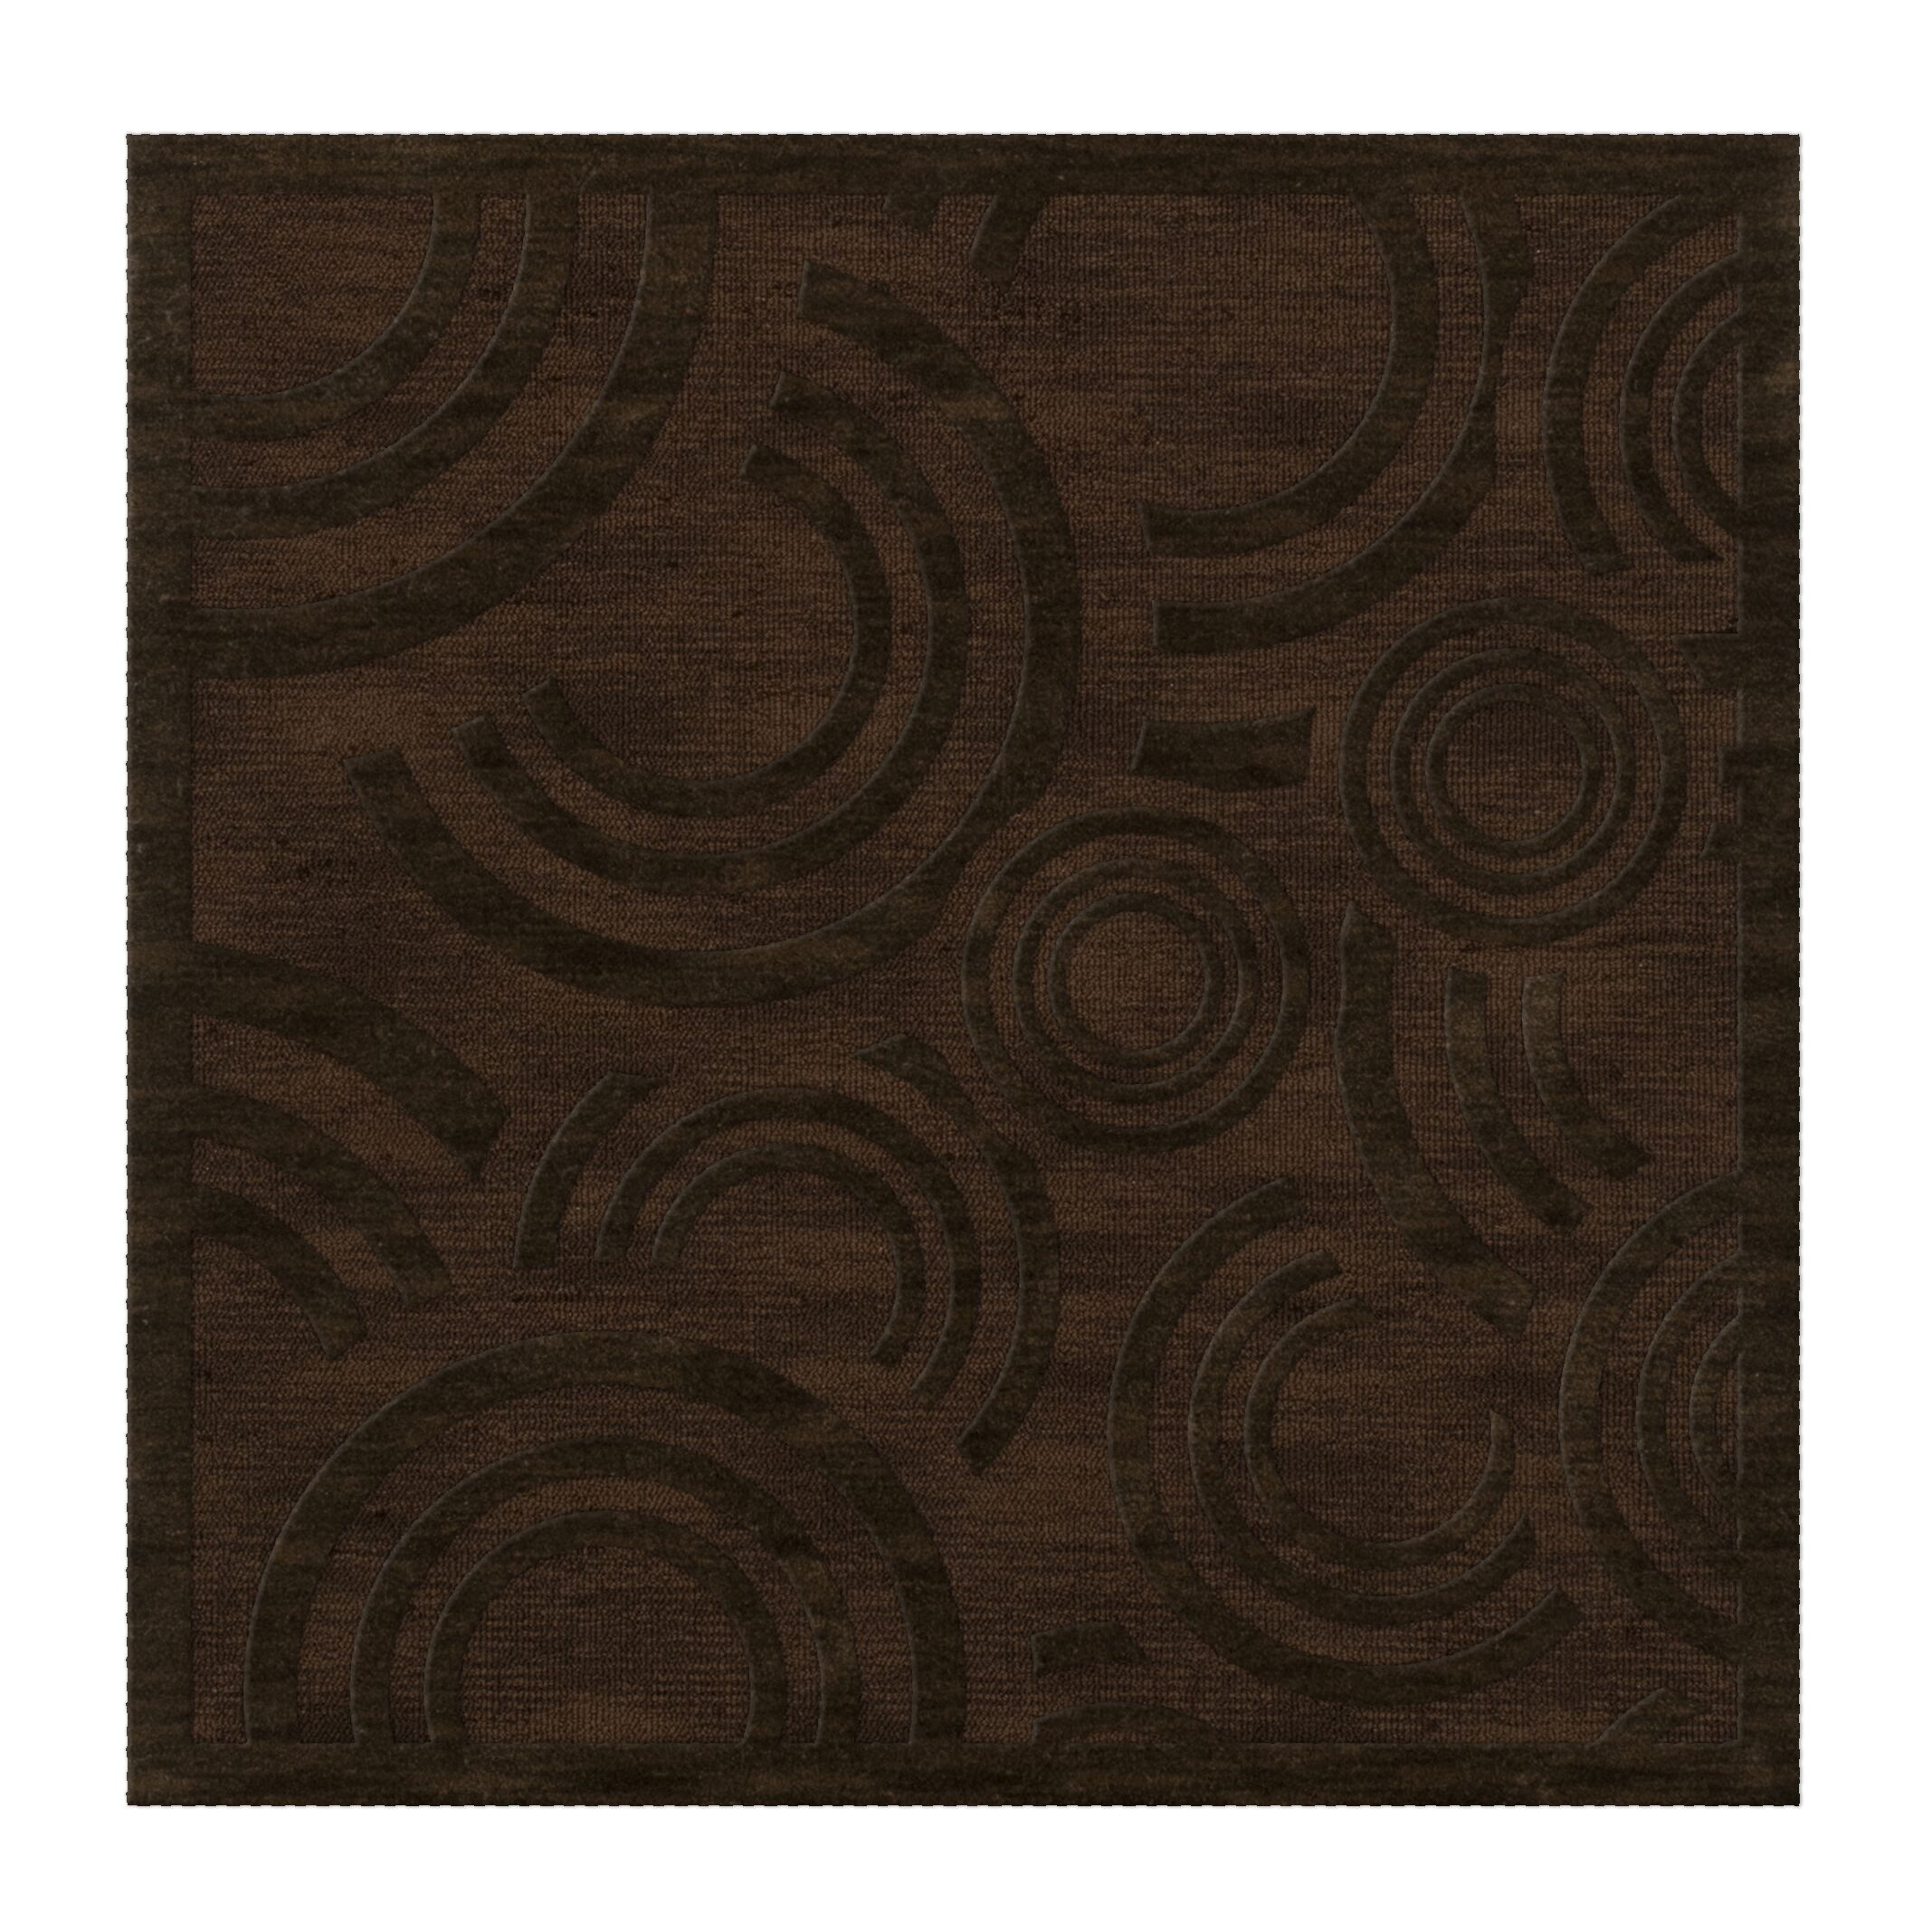 Dover Tufted Wool Fudge Area Rug Rug Size: Square 6'